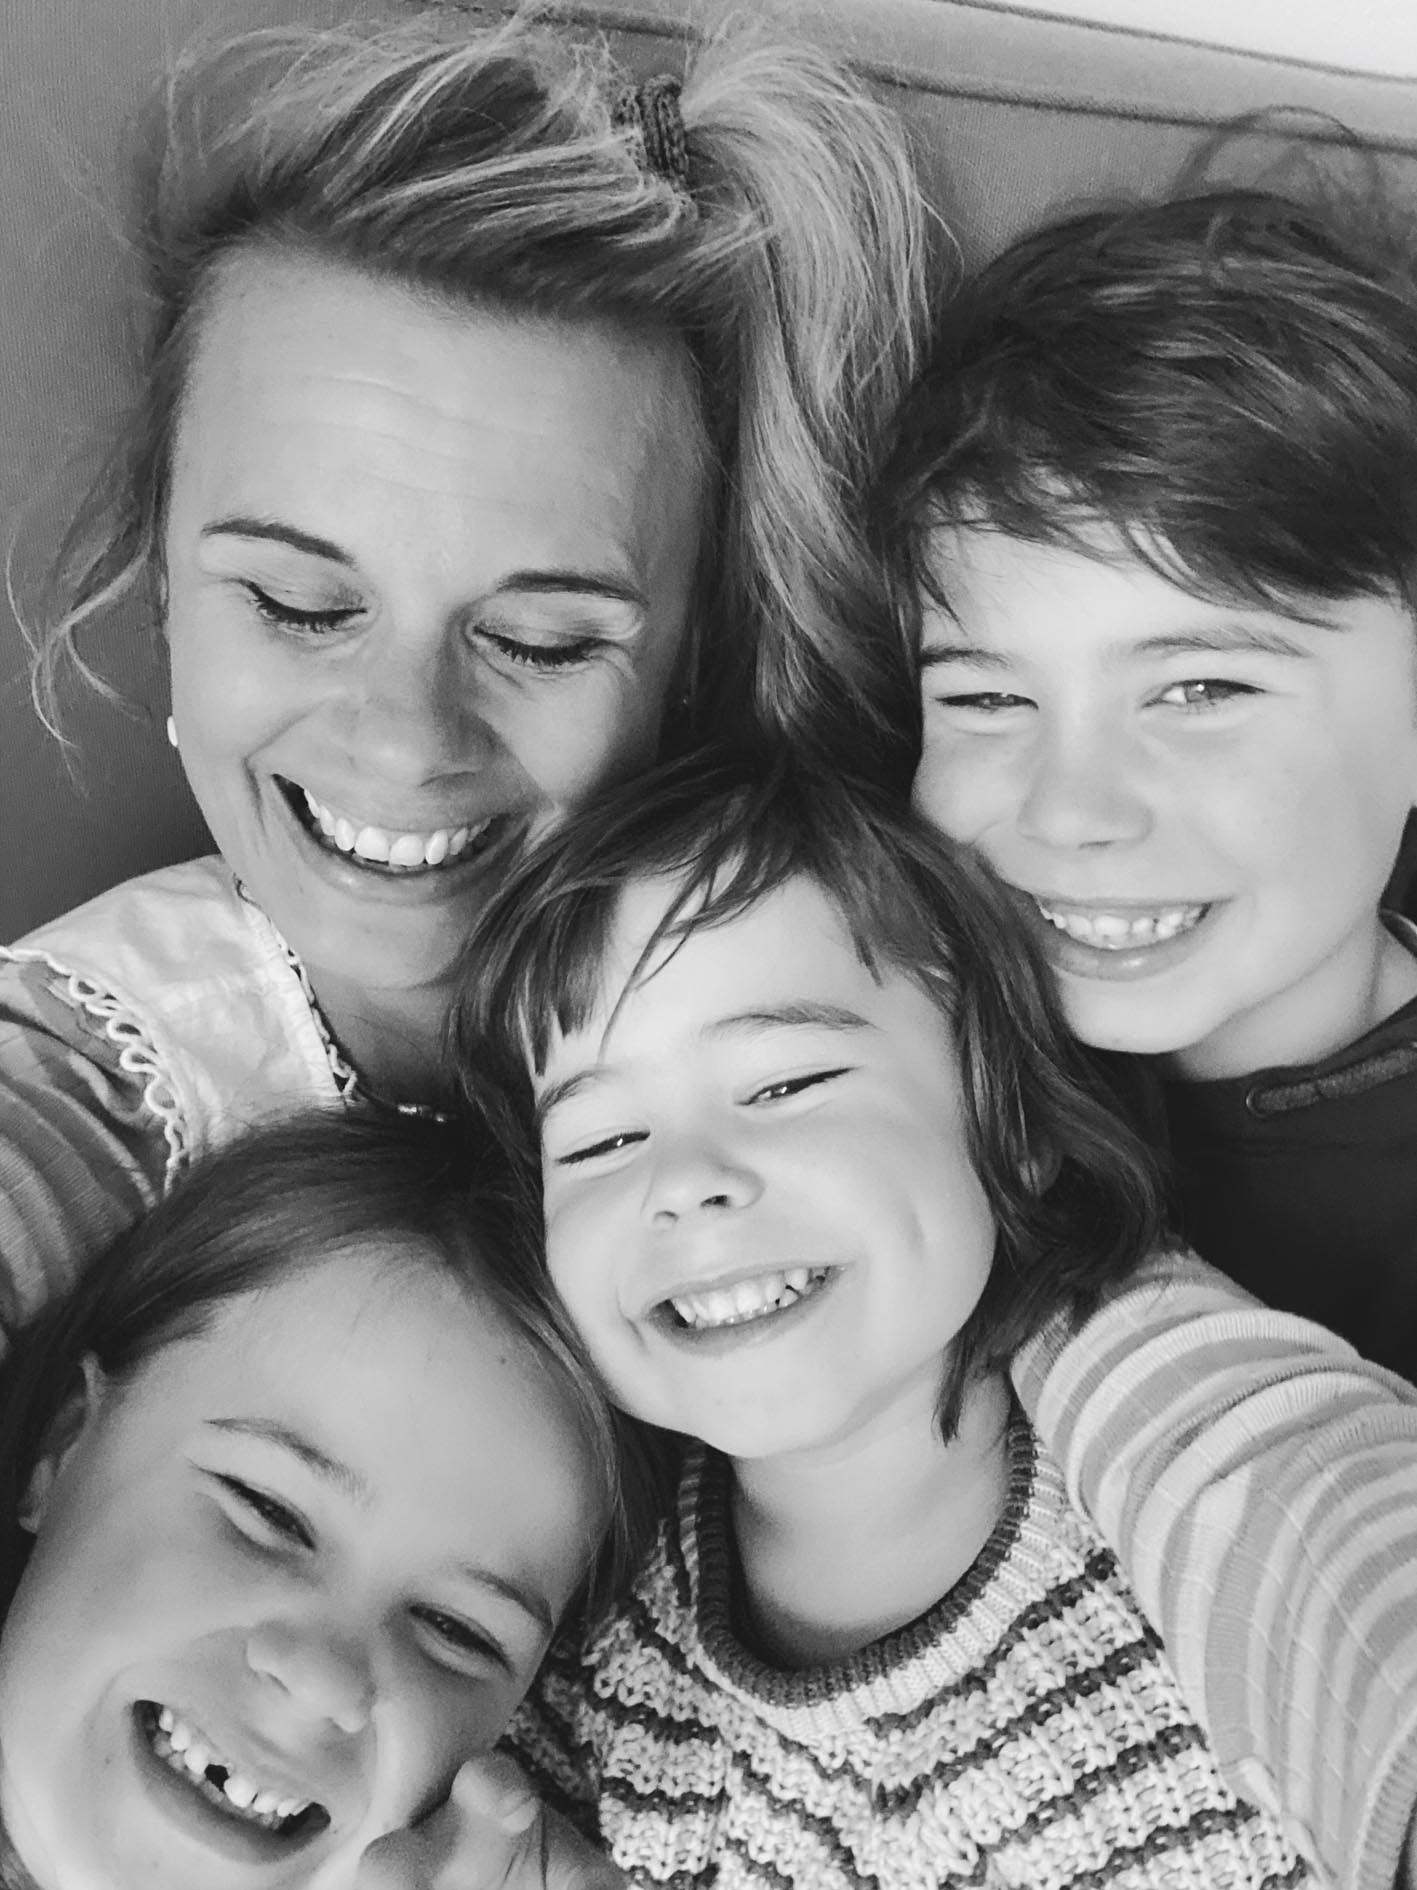 Trine with her 3 lovely kids.